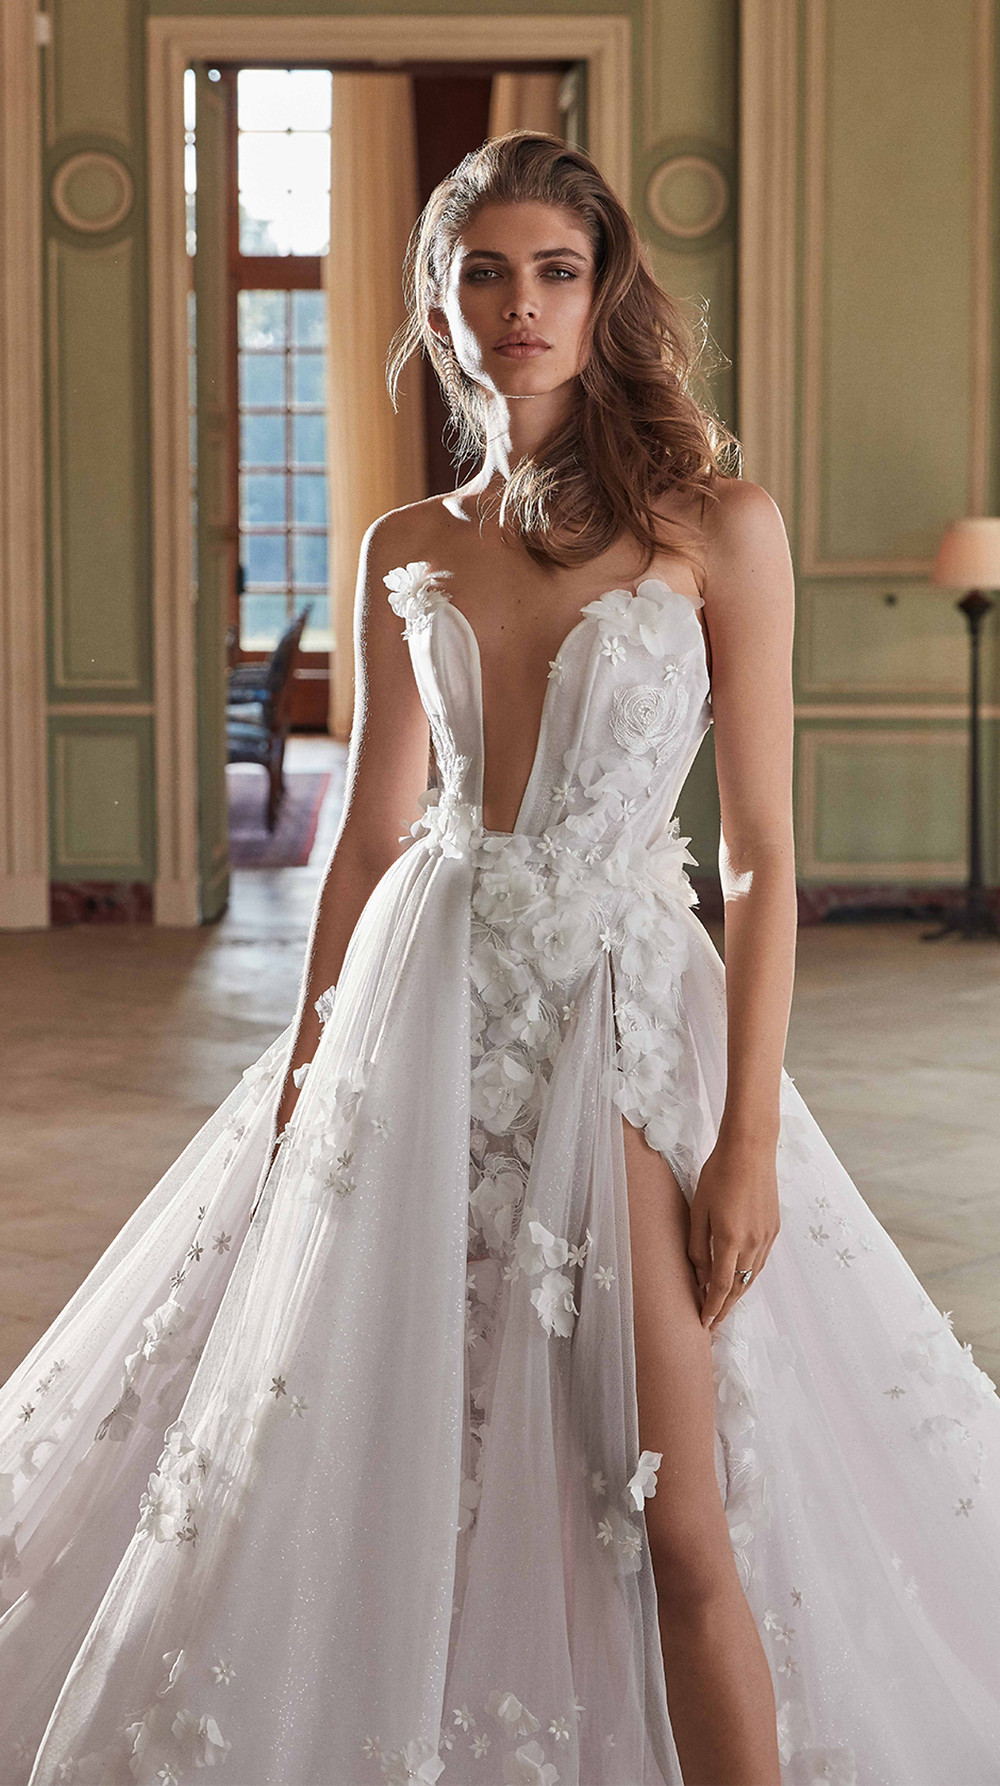 Dripping with 3D petals and clear sparkle embellishments, this whimsical A-line wedding gown reflects a light lavender color through layers of silk and tulle with a sheer plunging corset, high slit, and romantic layered overskirt